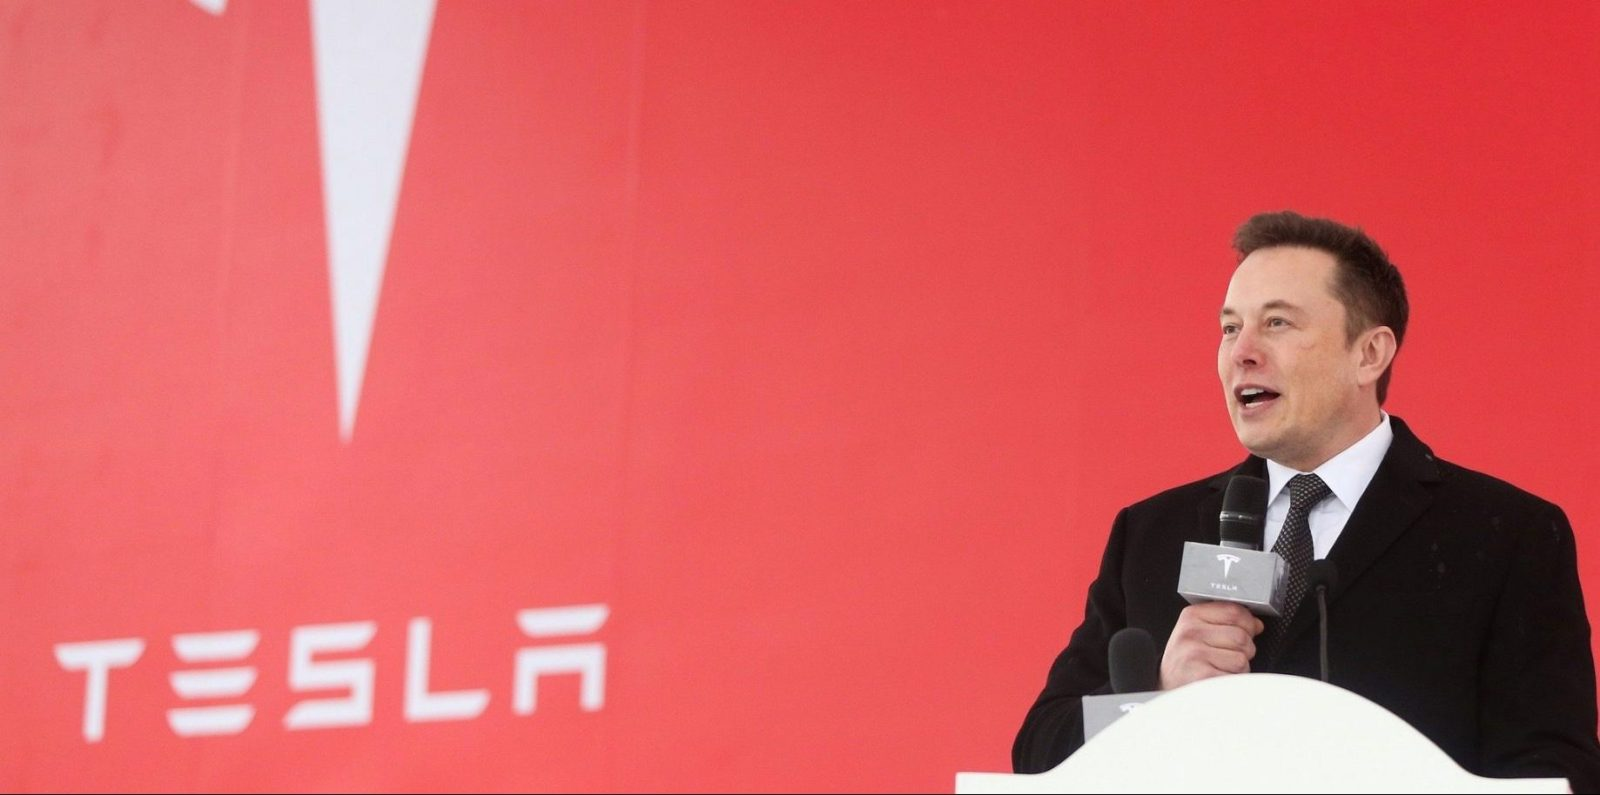 Tesla Expands Presence in China with New Gigafactory